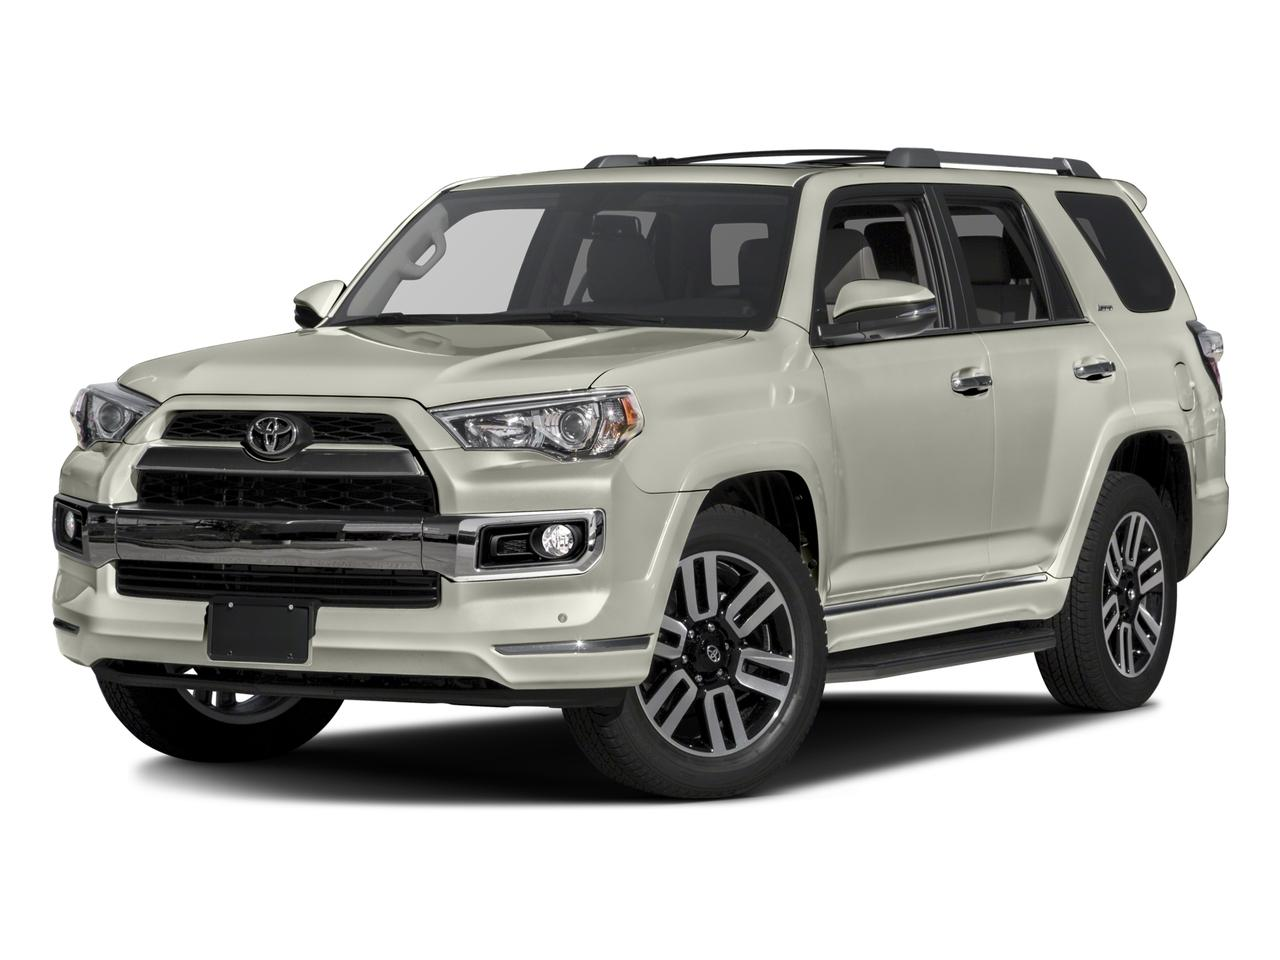 2016 Toyota 4Runner Vehicle Photo in BEND, OR 97701-5133